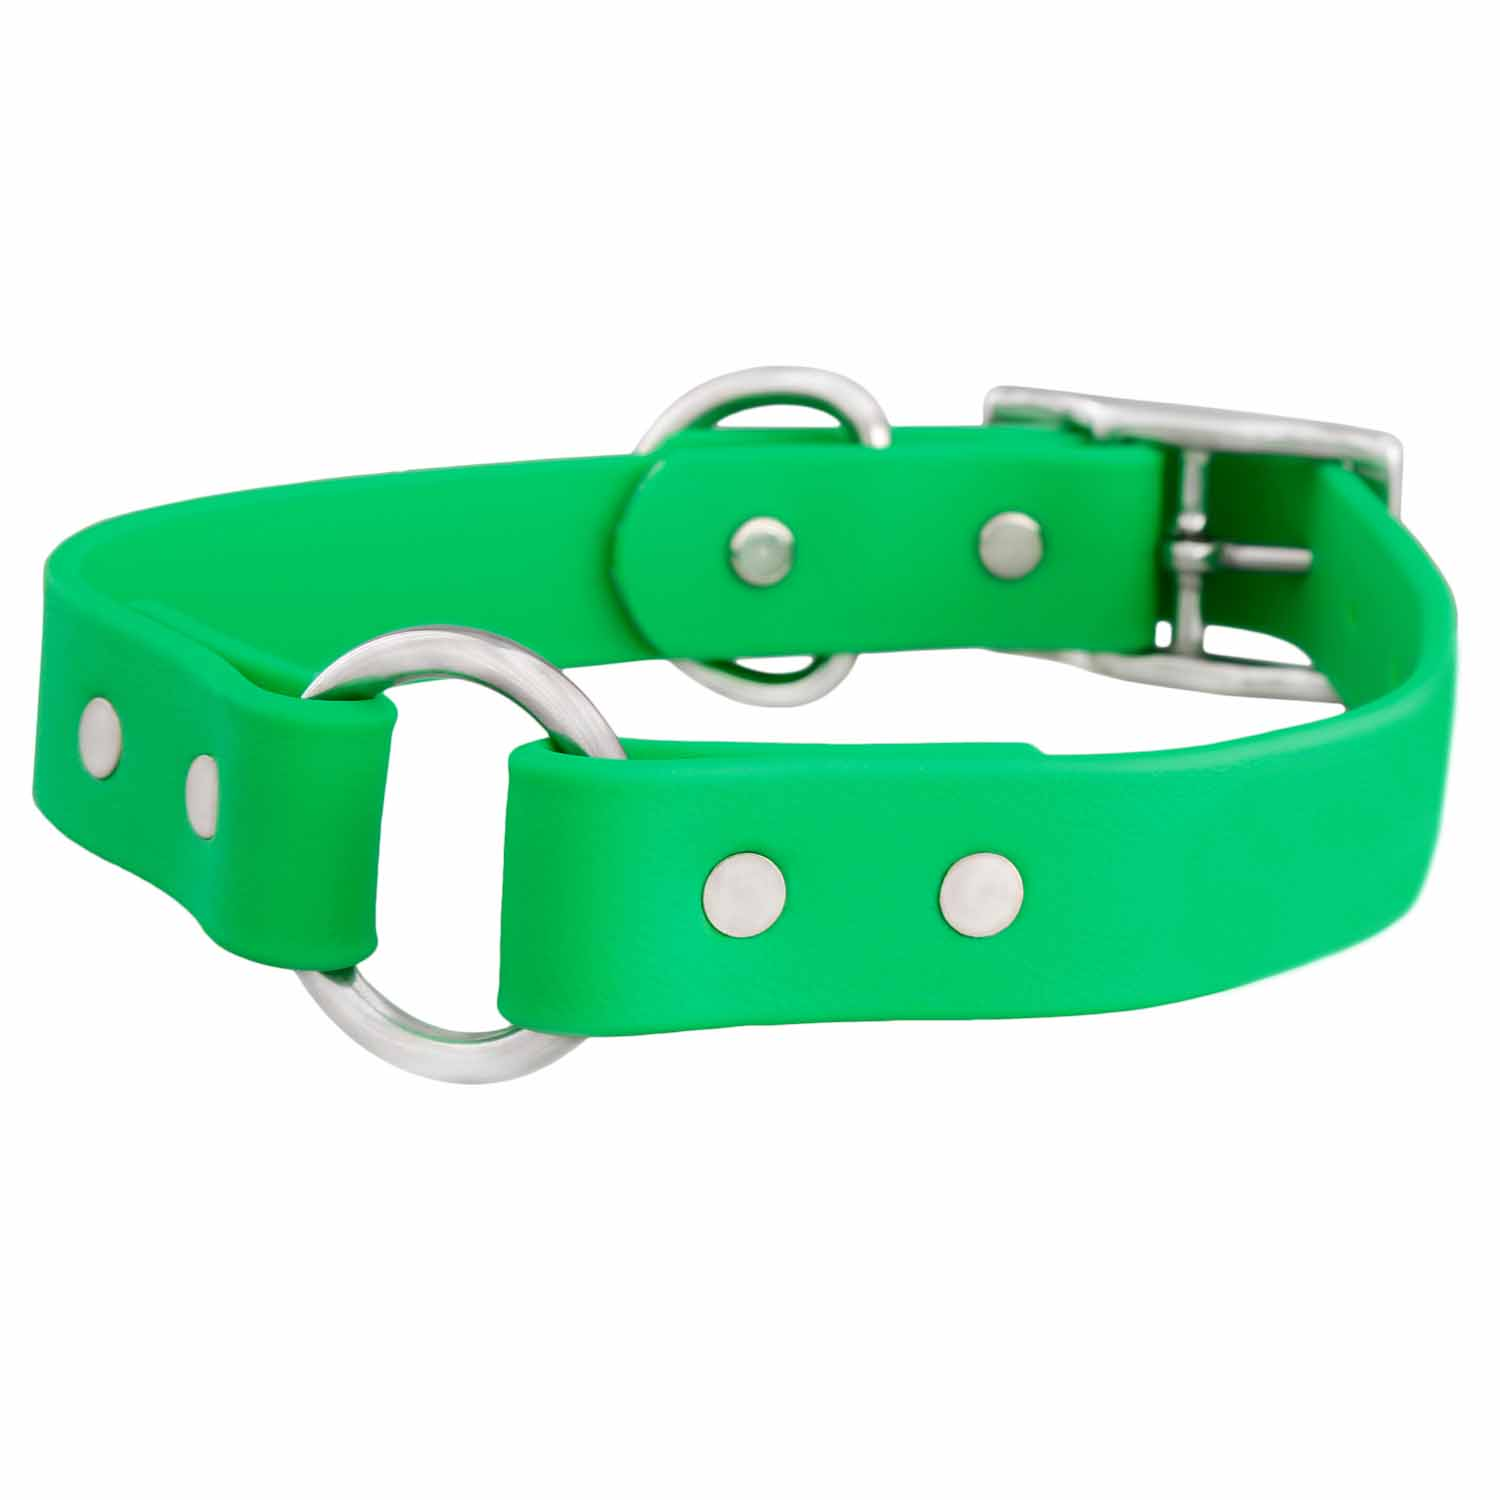 Waterproof Safety Dog Collar - Bright Green